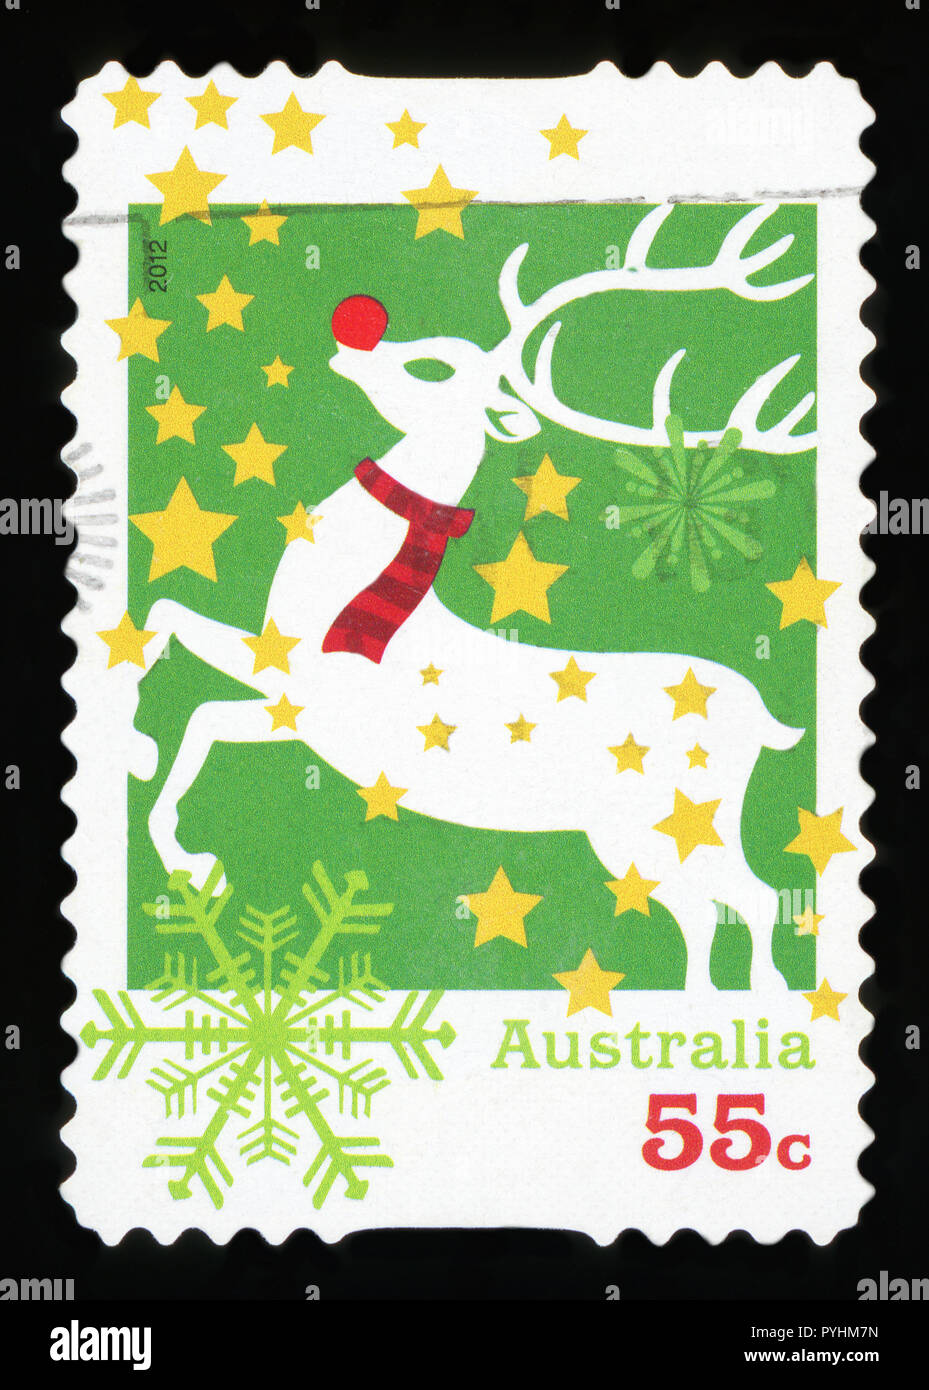 AUSTRALIA - CIRCA 2012: A used postage stamp from Australia, depicting an illustration of Rudolph the red-nosed Reindeer, celebrating Christmas, circa - Stock Image